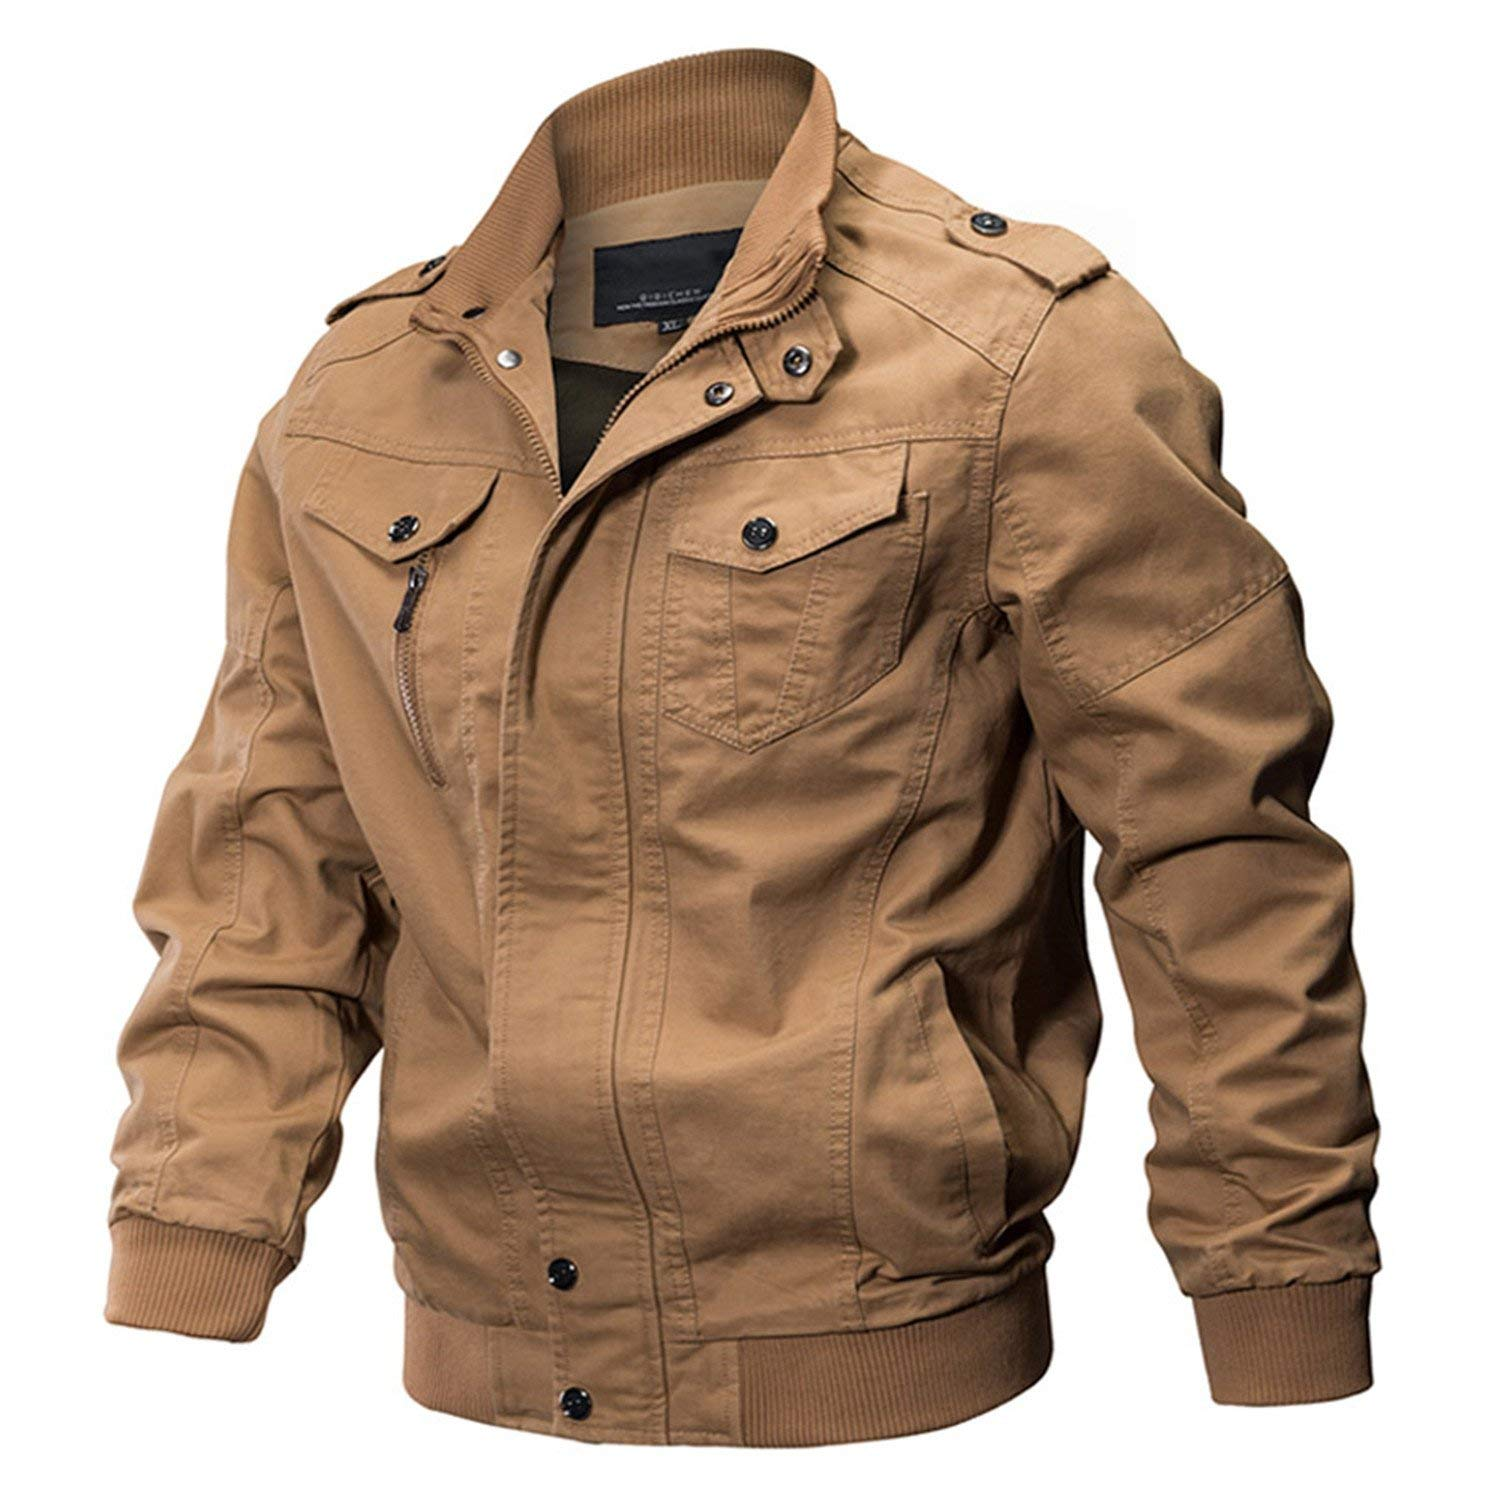 ddc16c0181 Get Quotations · Willie Marlow Military Jacket Men Winter Cotton Jacket  Coat Army Pilot Jackets Air Force Spring Cargo